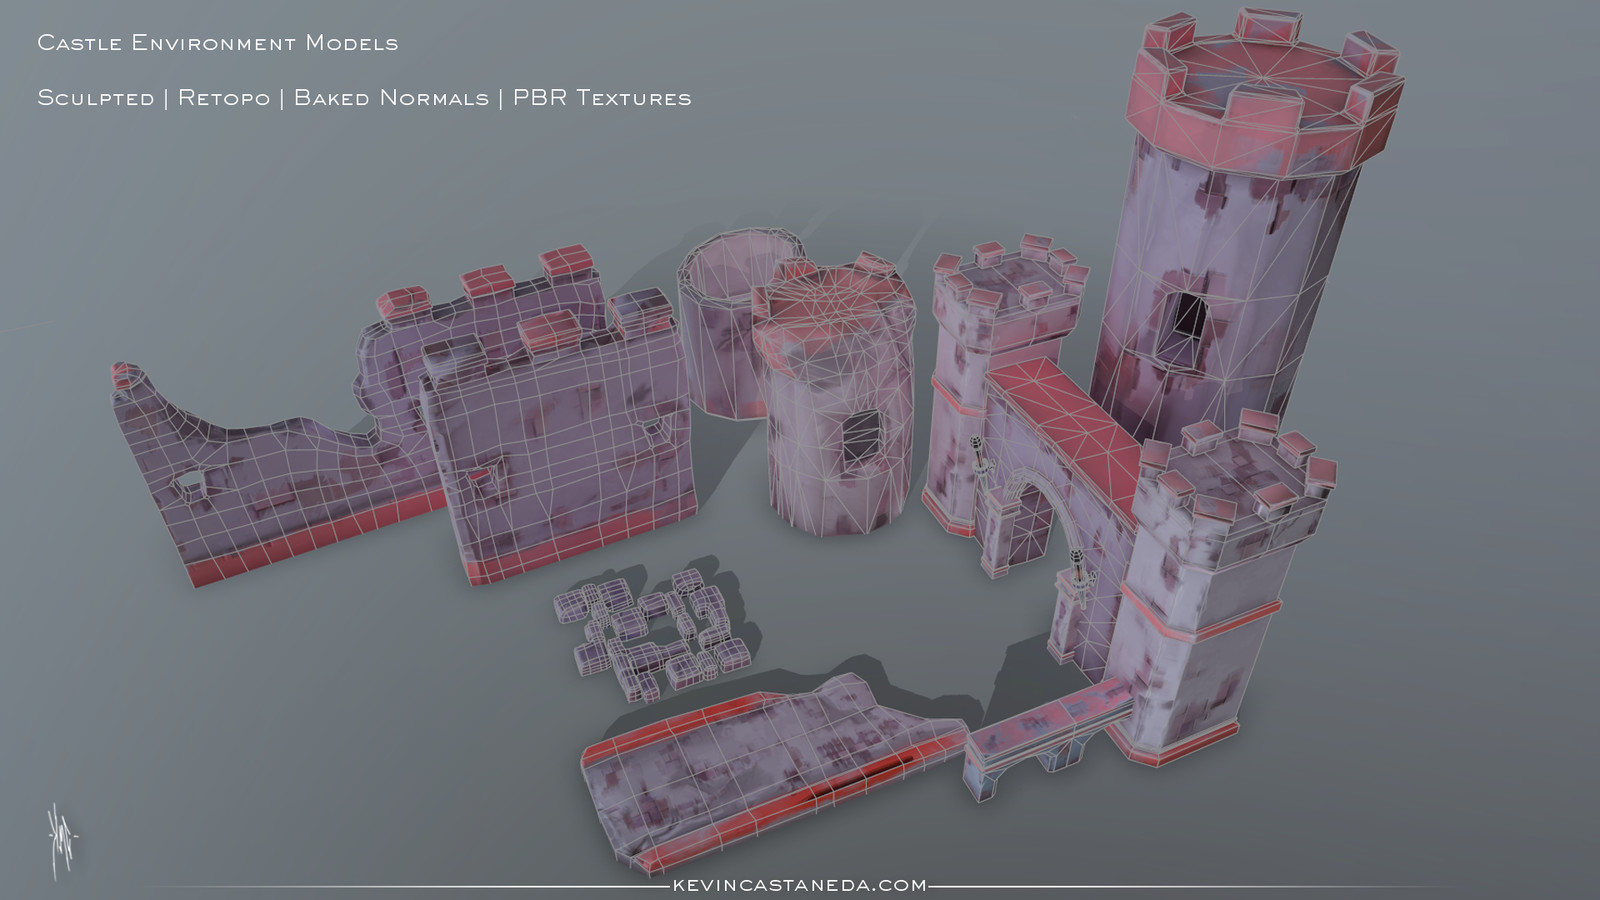 Wireframe of the castle environment models. These pieces were first modeled in maya, taken to Zbrush, sculpted, and then baked the normal maps. Textures were done in Substance Painter.